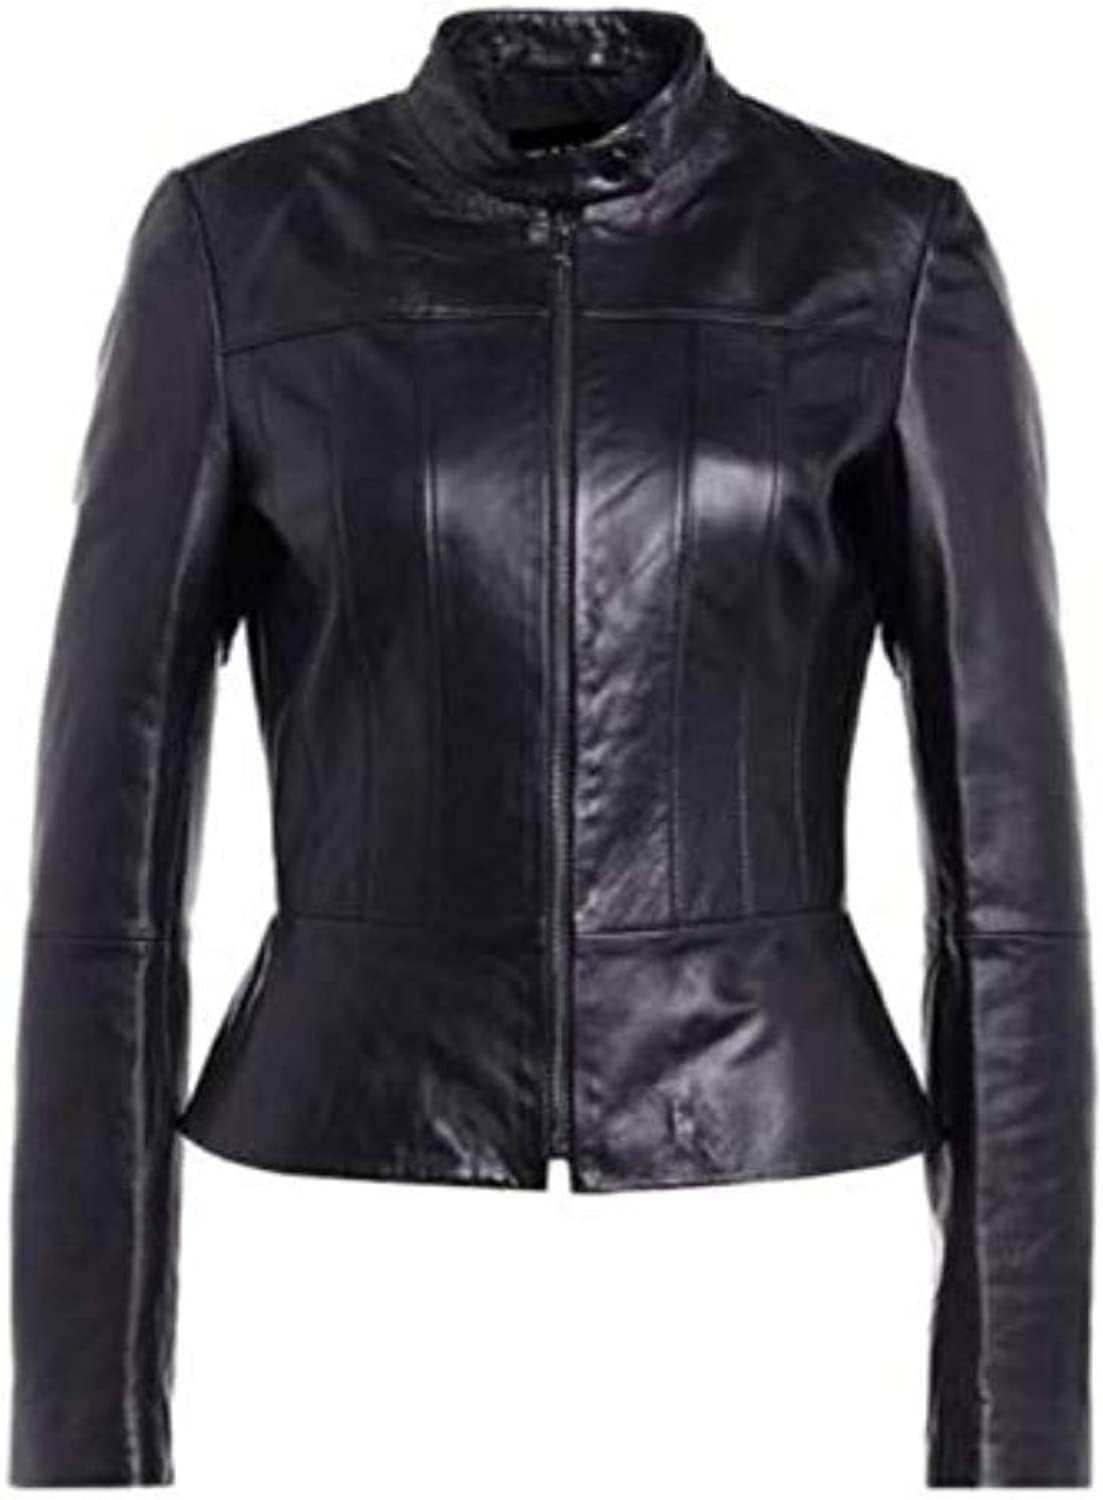 New Fashion Style Women's Leather Jackets Black C3_